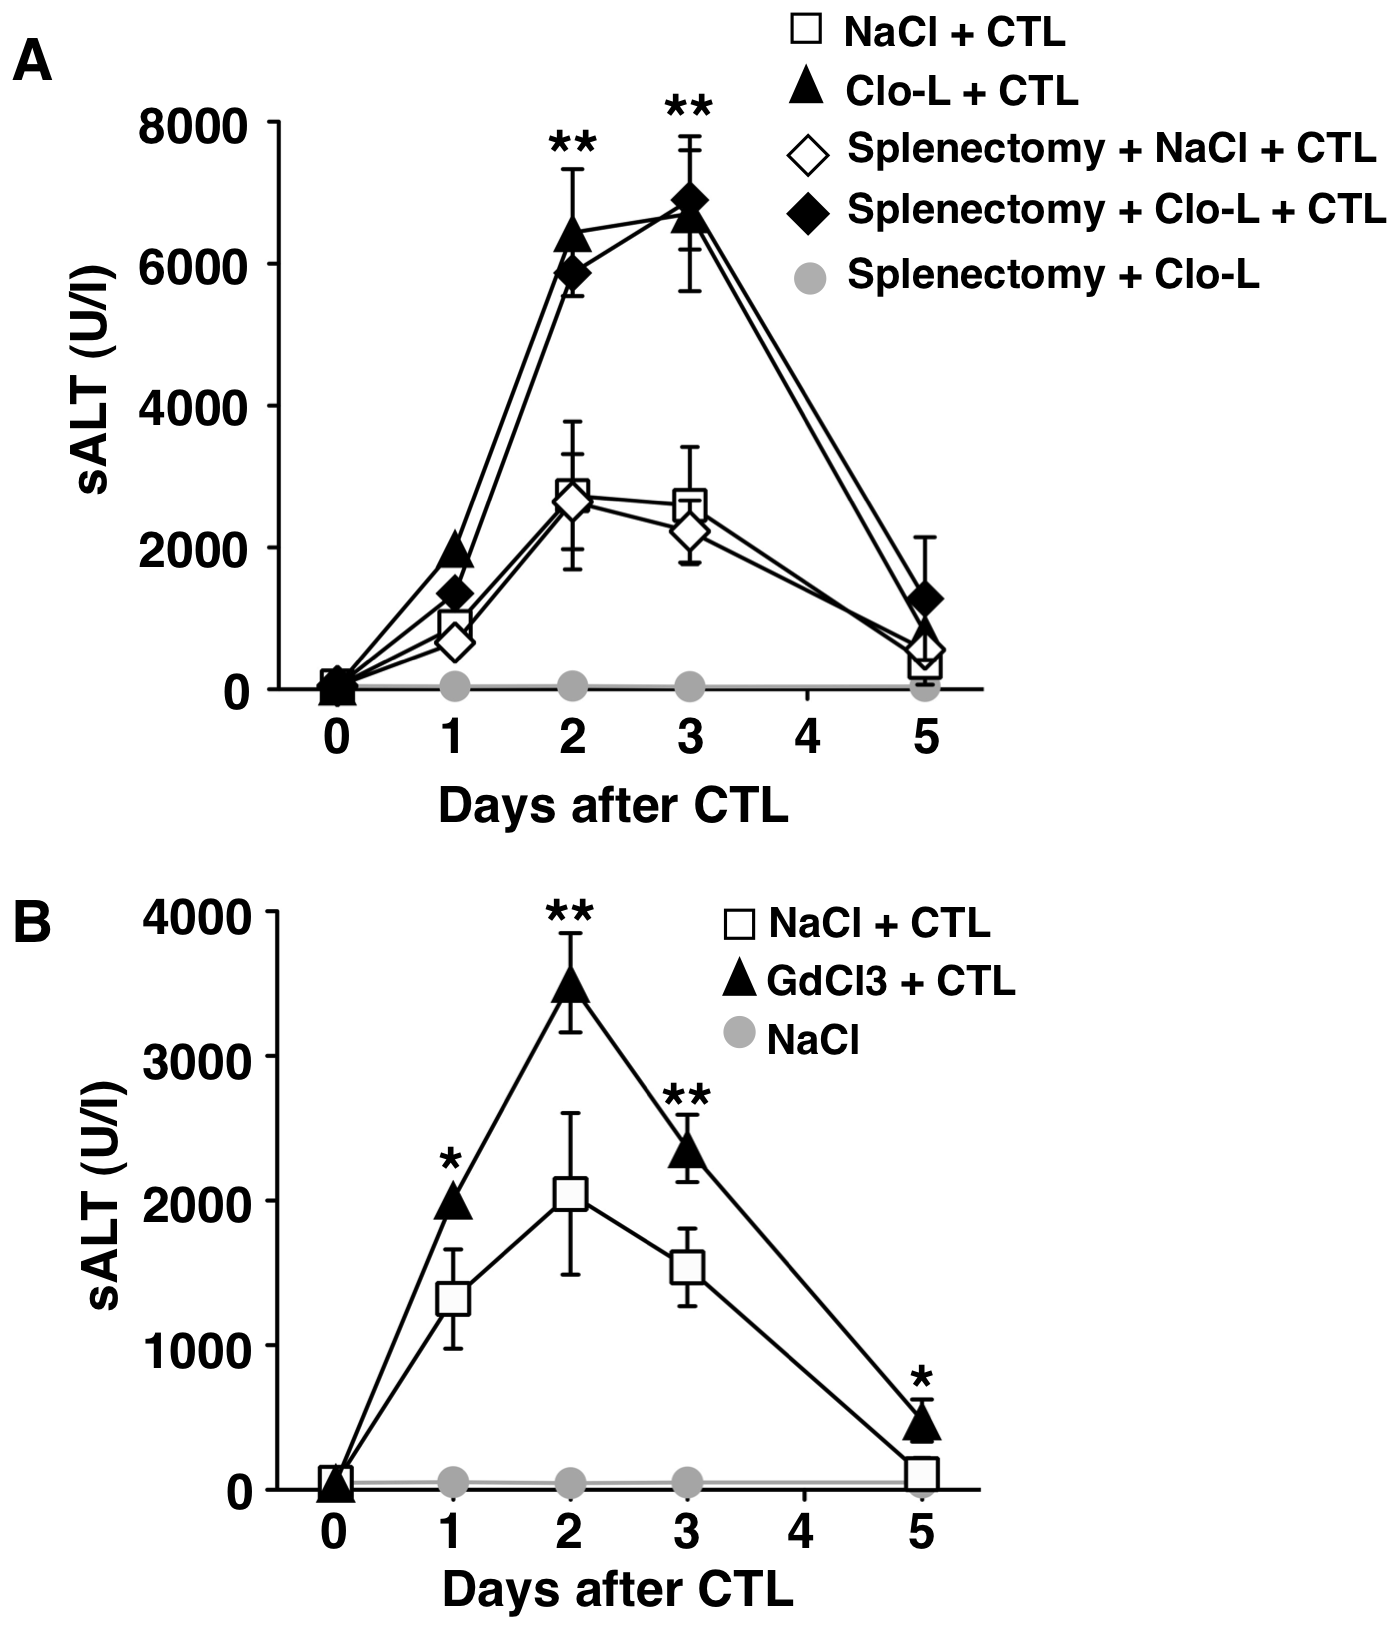 The effects of splenectomy and GdCl3 on liver disease severity.